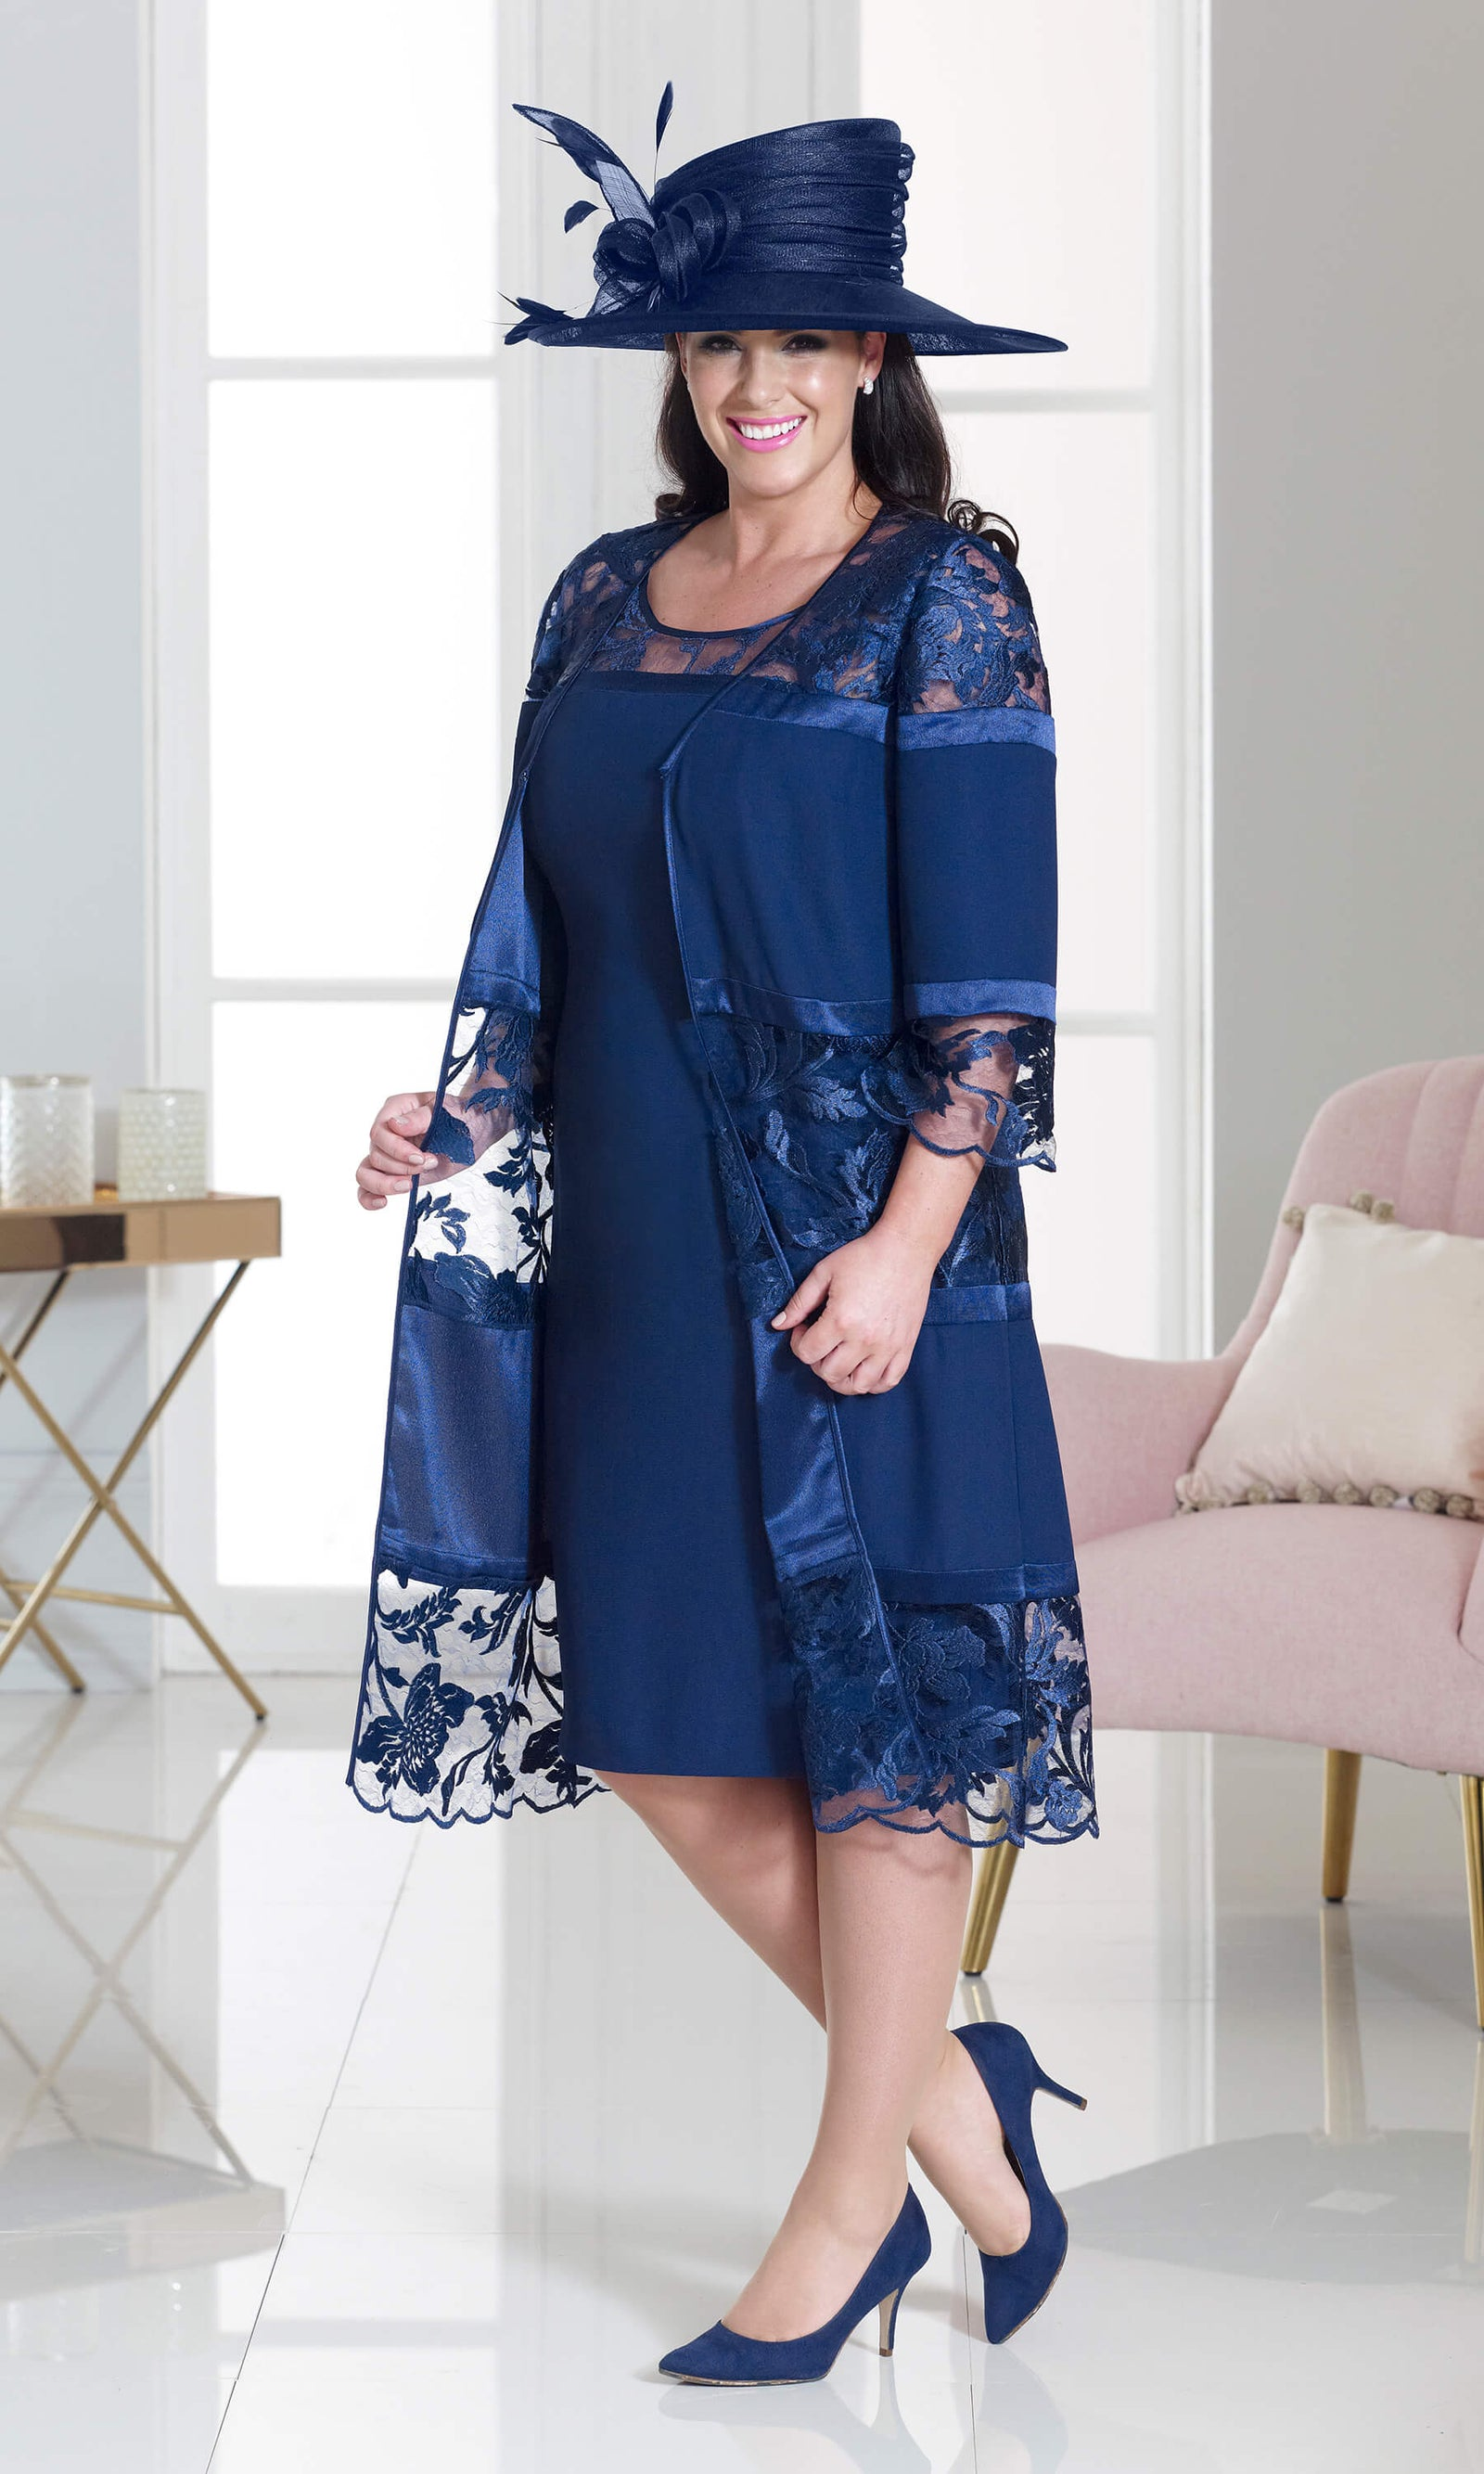 DU264 Navy Dressed Up Dress With Lace Frock Coat